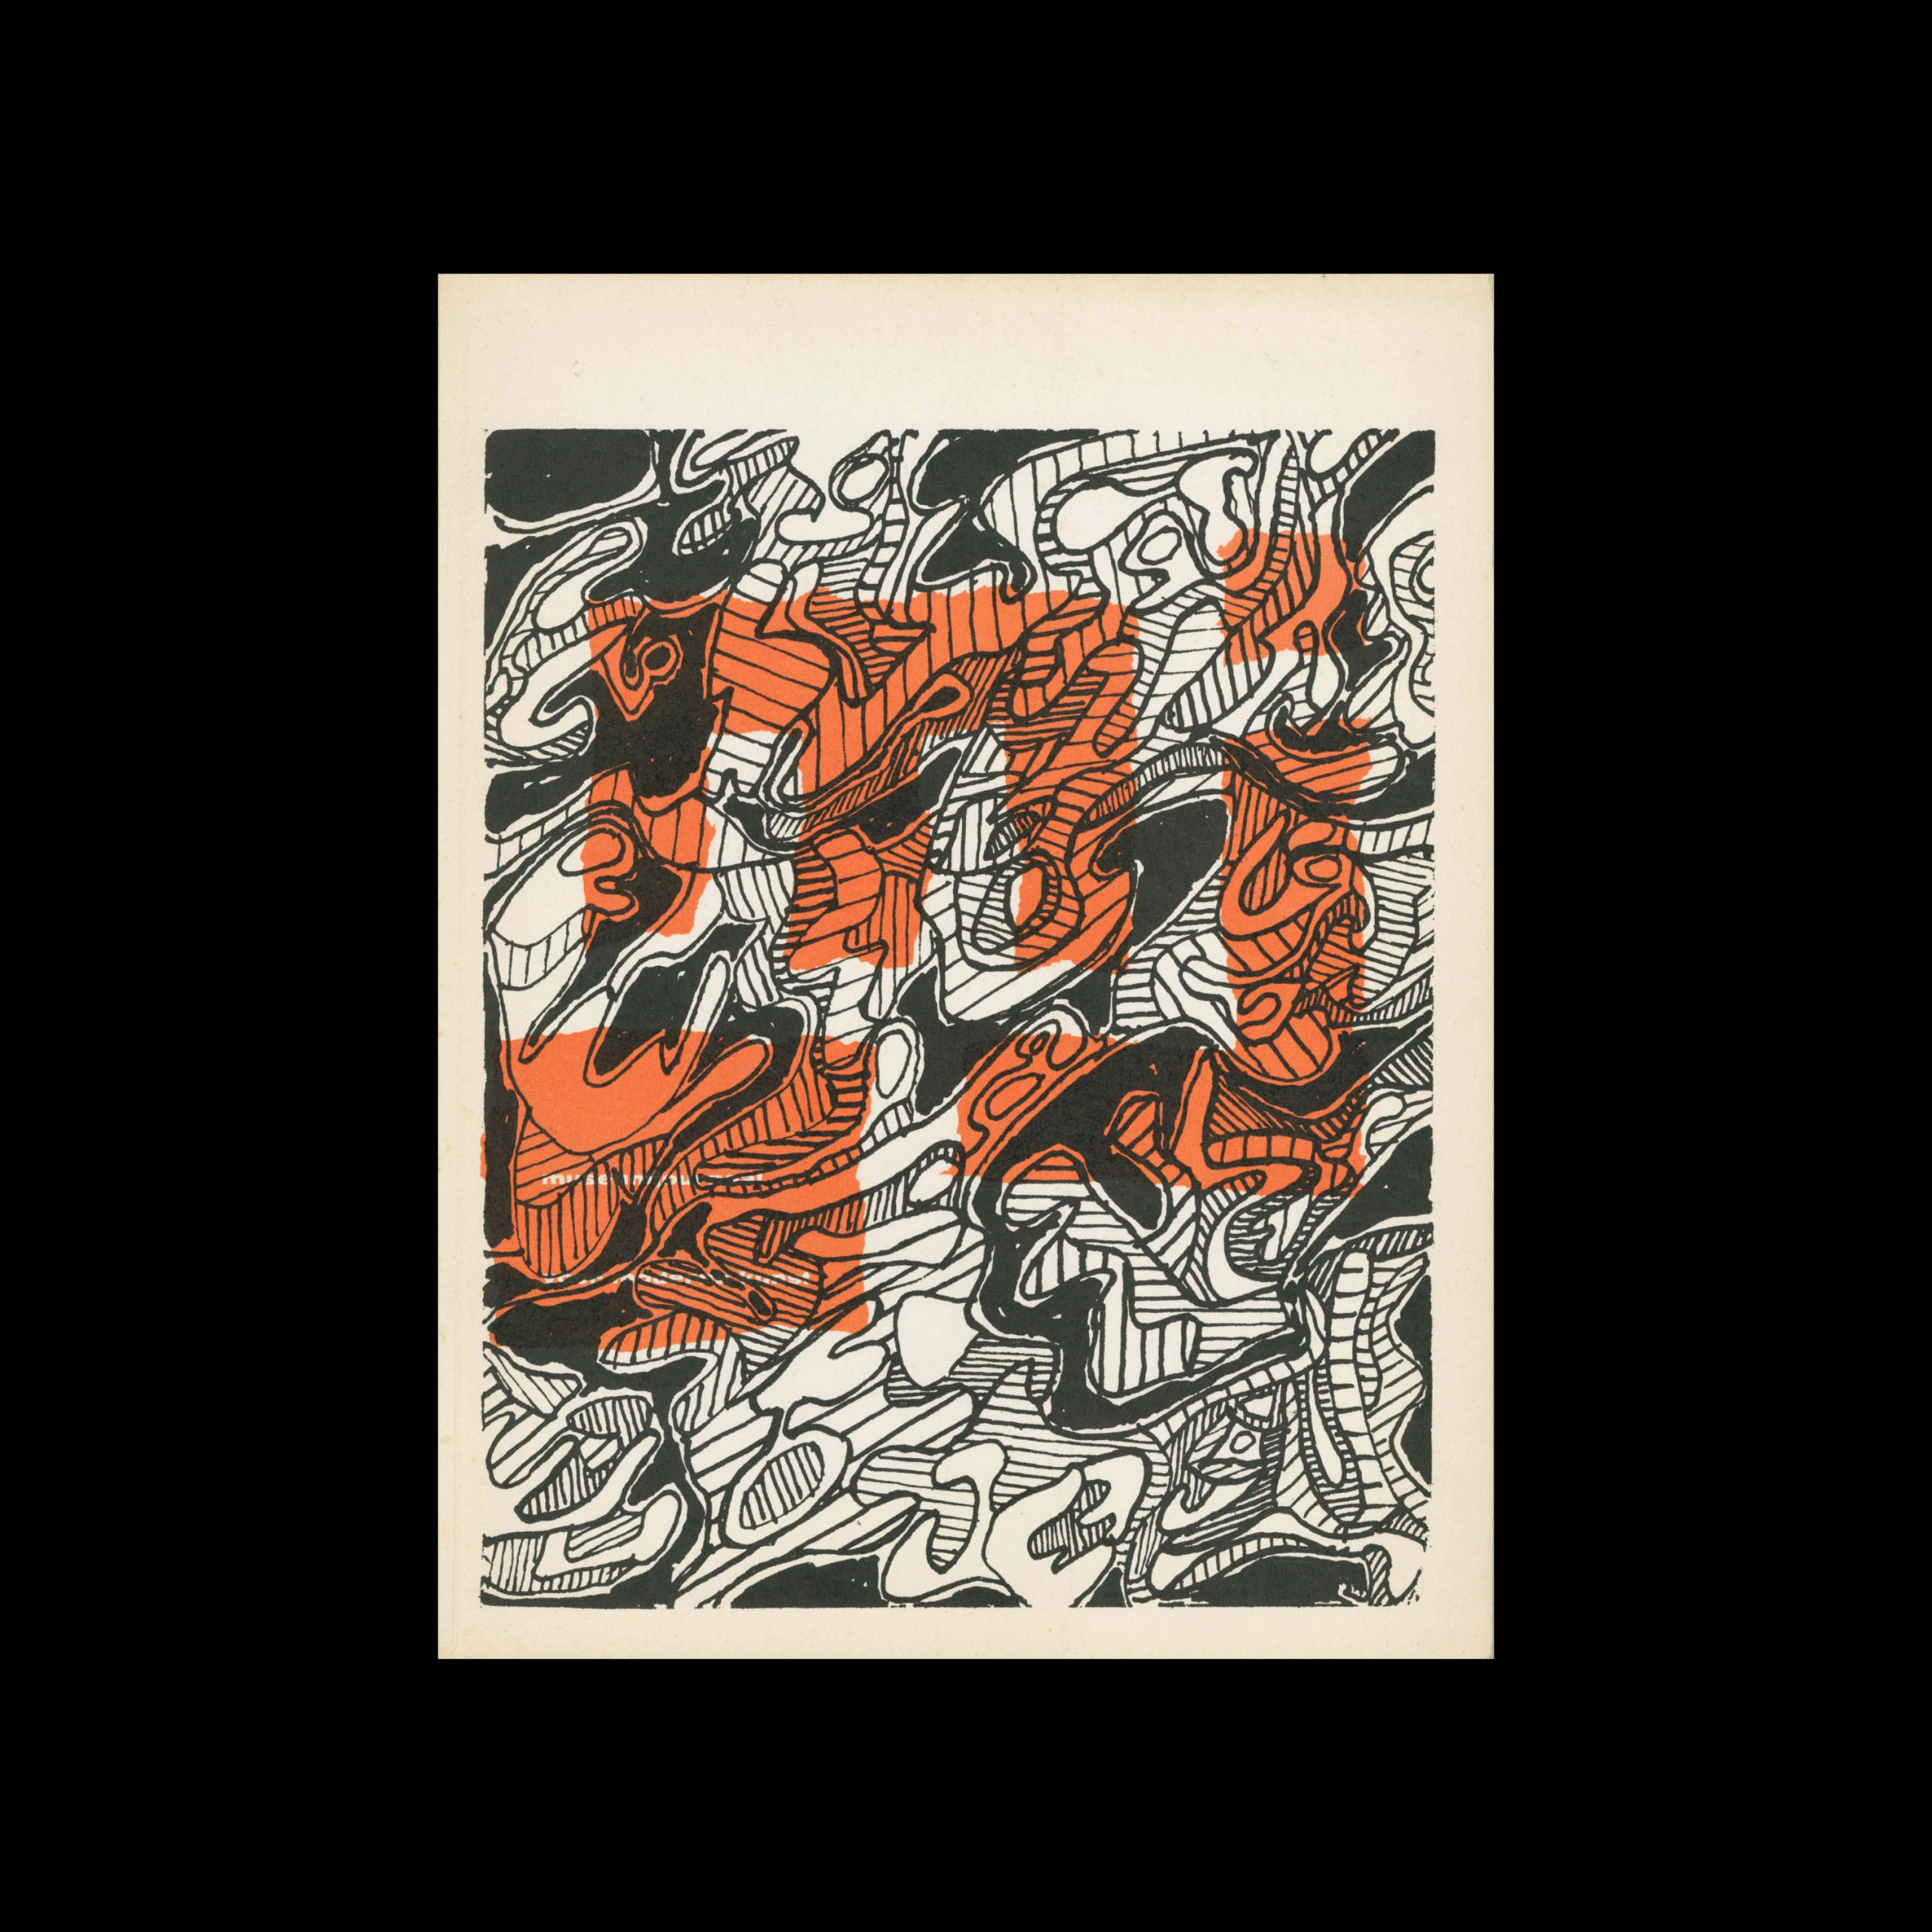 Museumjournaal, Serie 9 no4, 1963. Cover illustration by Jean Dubuffet.